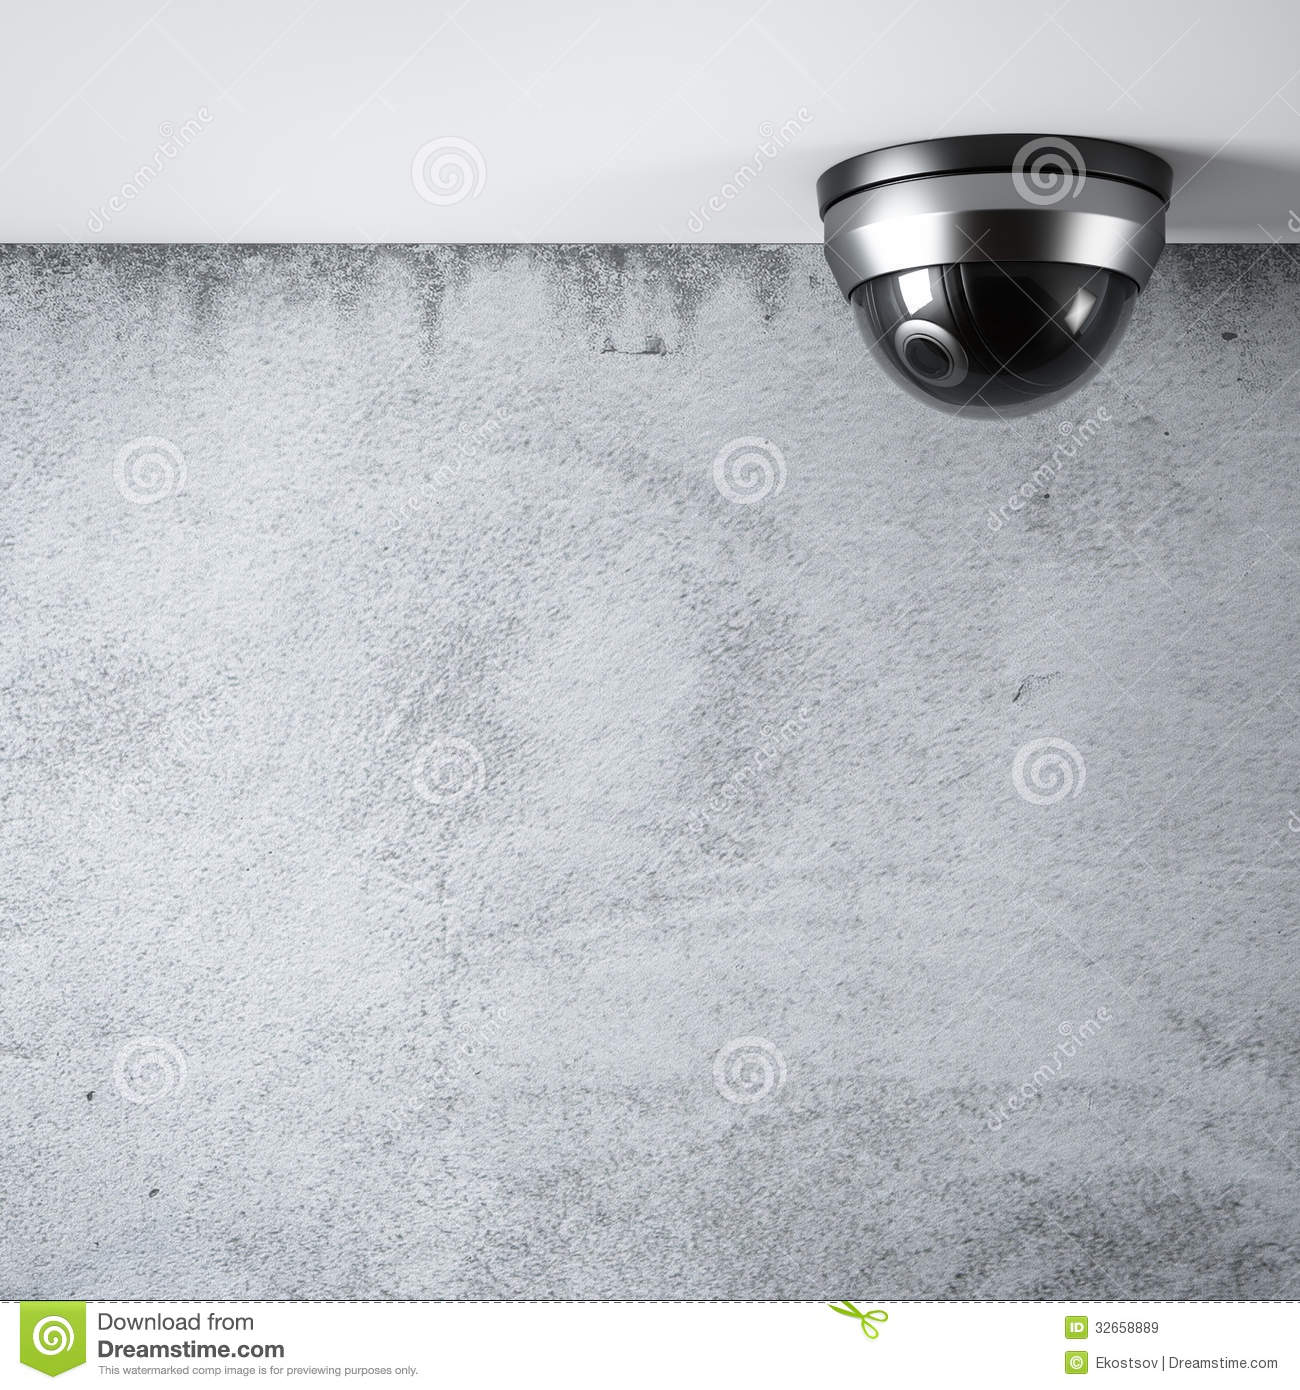 Security camera in interior royalty free stock images for Interior home security cameras